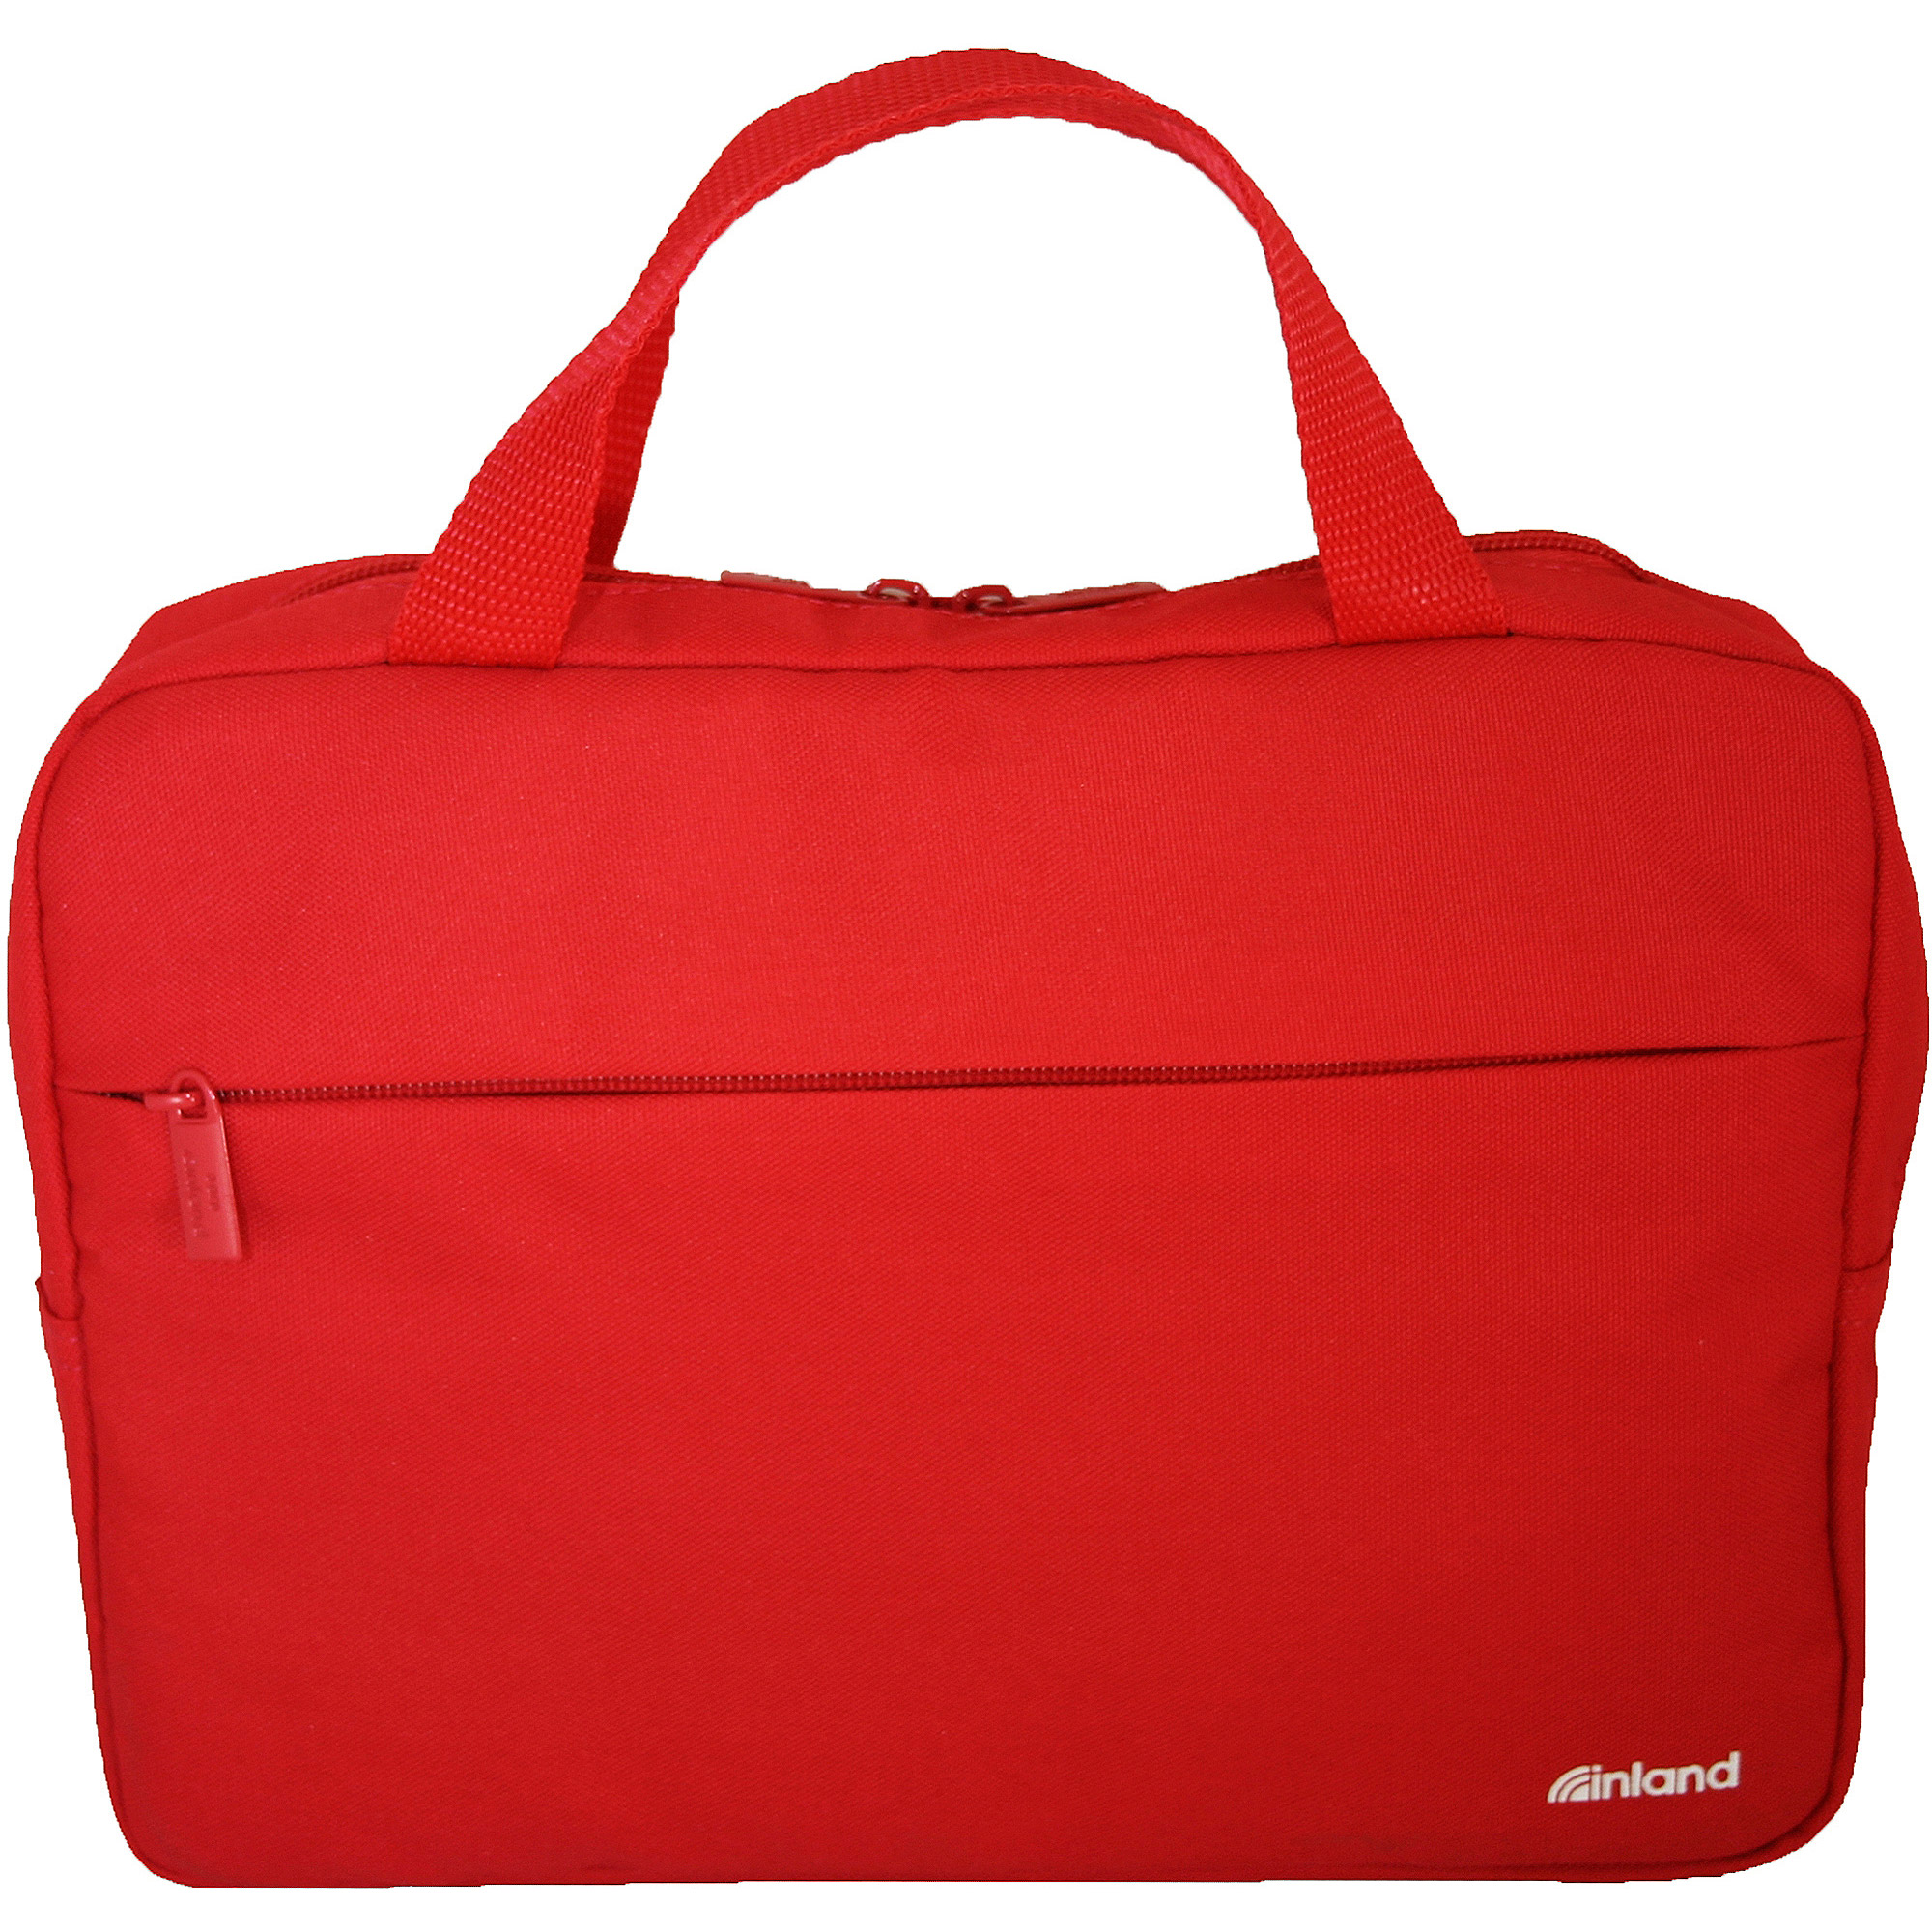 "Inland Pro 15.6"" Notebook Laptop Bag"